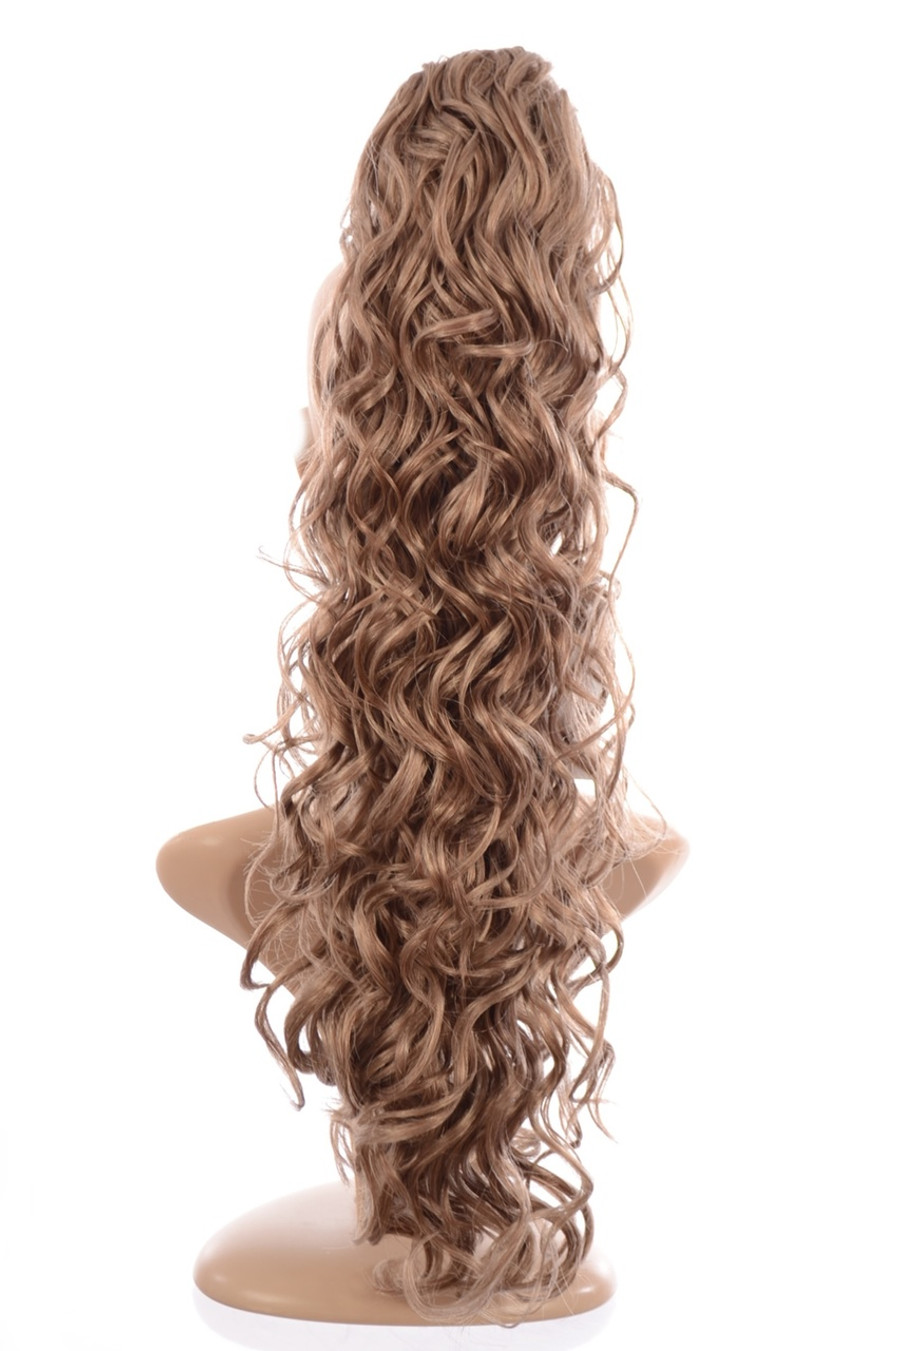 Claw Grip Ringlet Curly Hair Piece Ponytail Clip: Harvest Moon Blonde